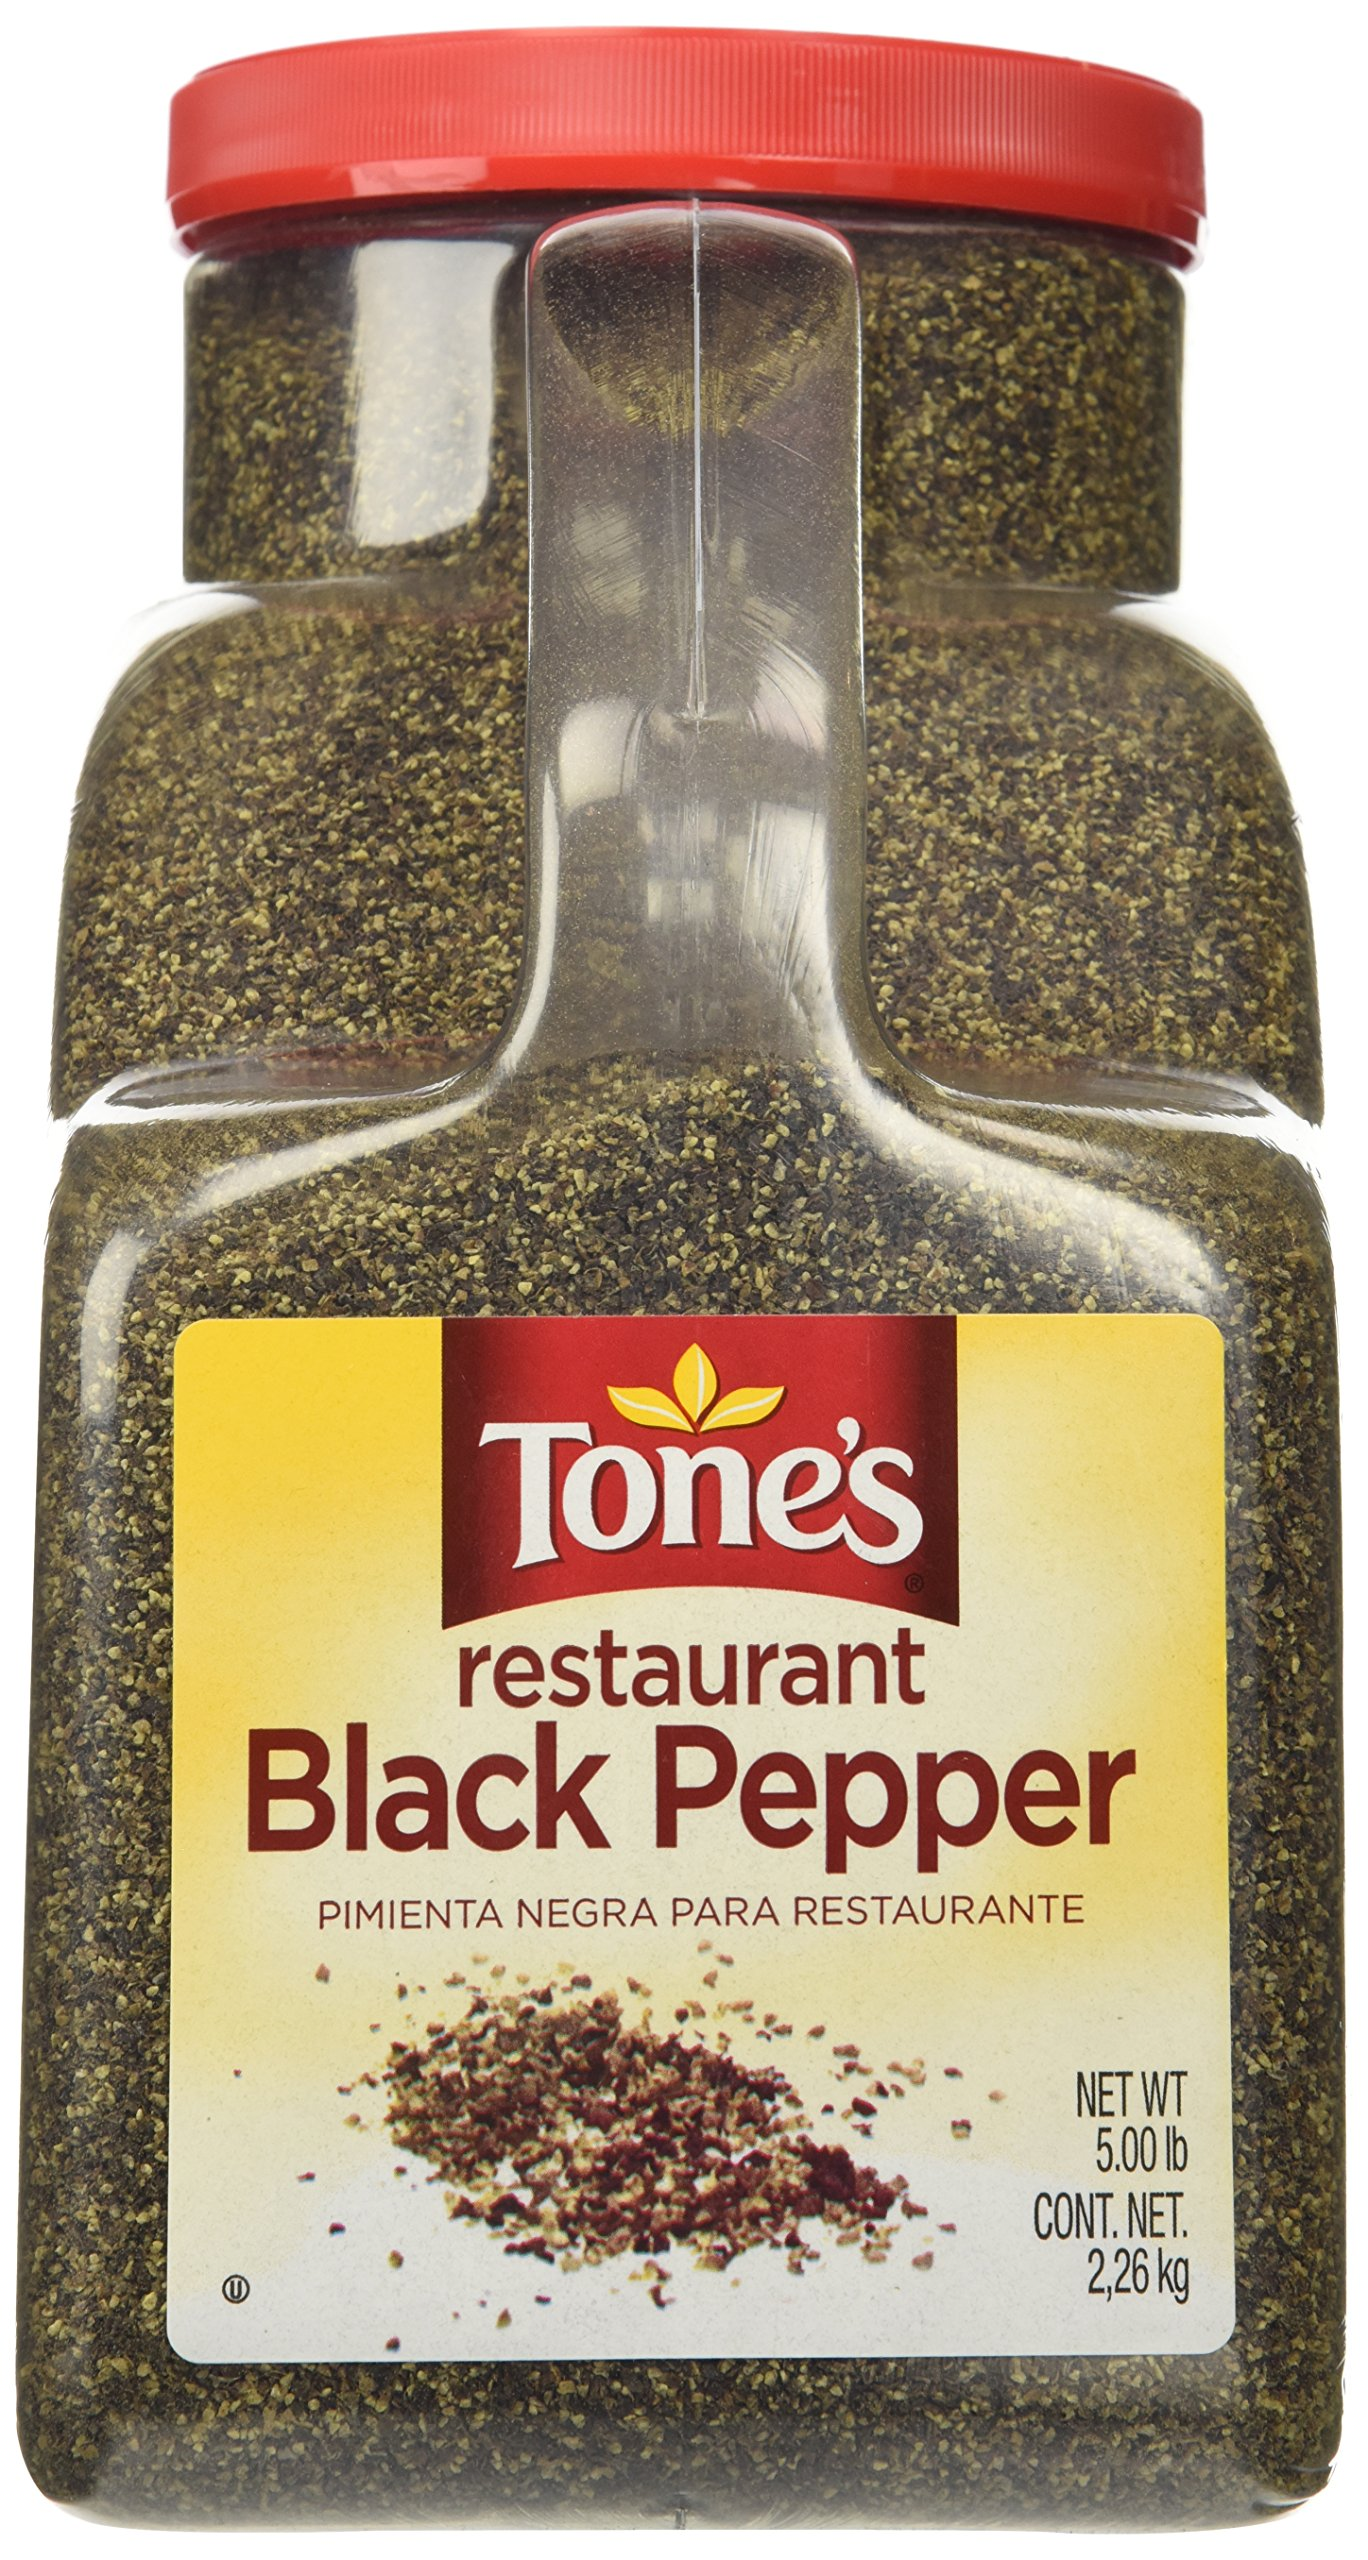 Tone's Restaurant Black Pepper 5lb.